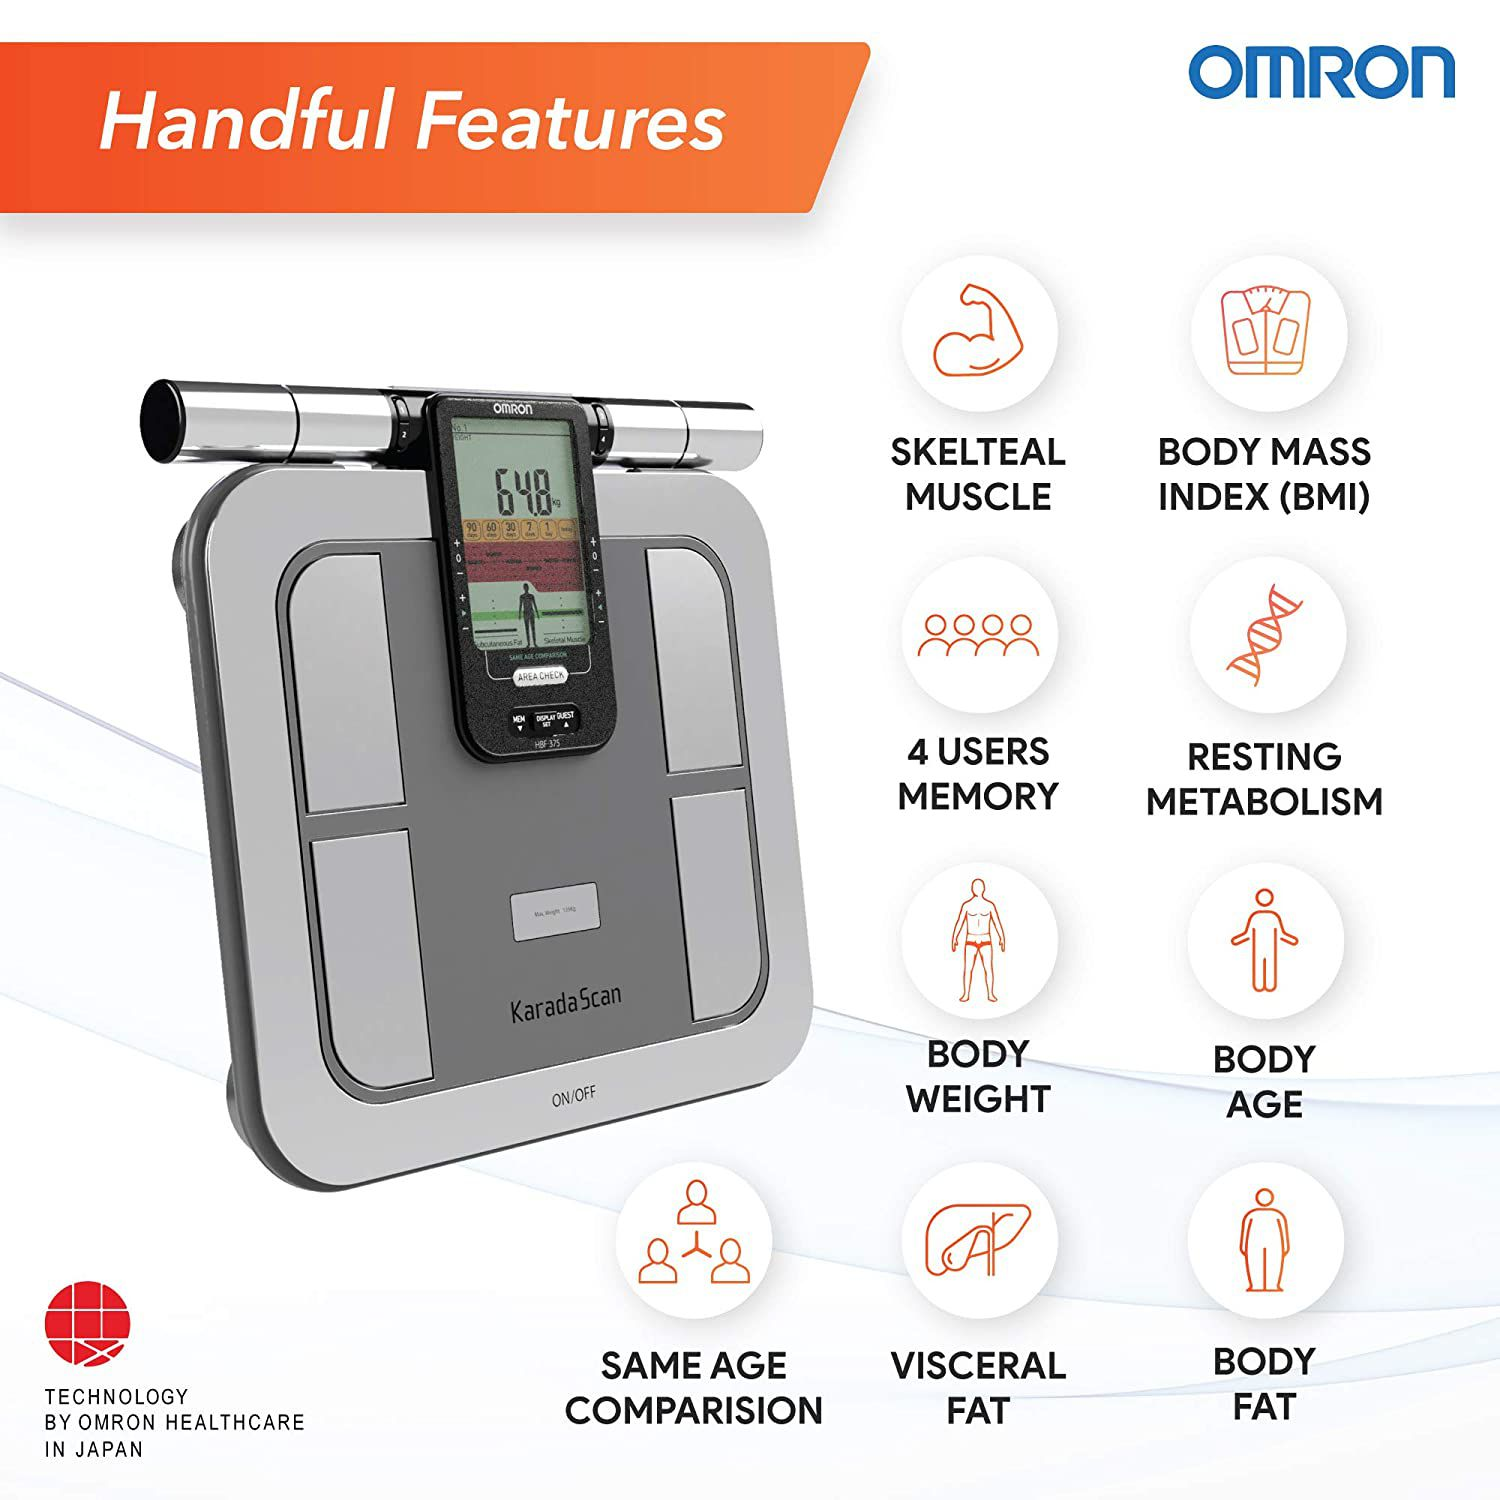 Omron HBF 20 Karada Scan Complete Digital Body Composition Monitor with 20  Months Memory to Monitor BMI, Segmental Body Fat & Skeletal Muscle, ...